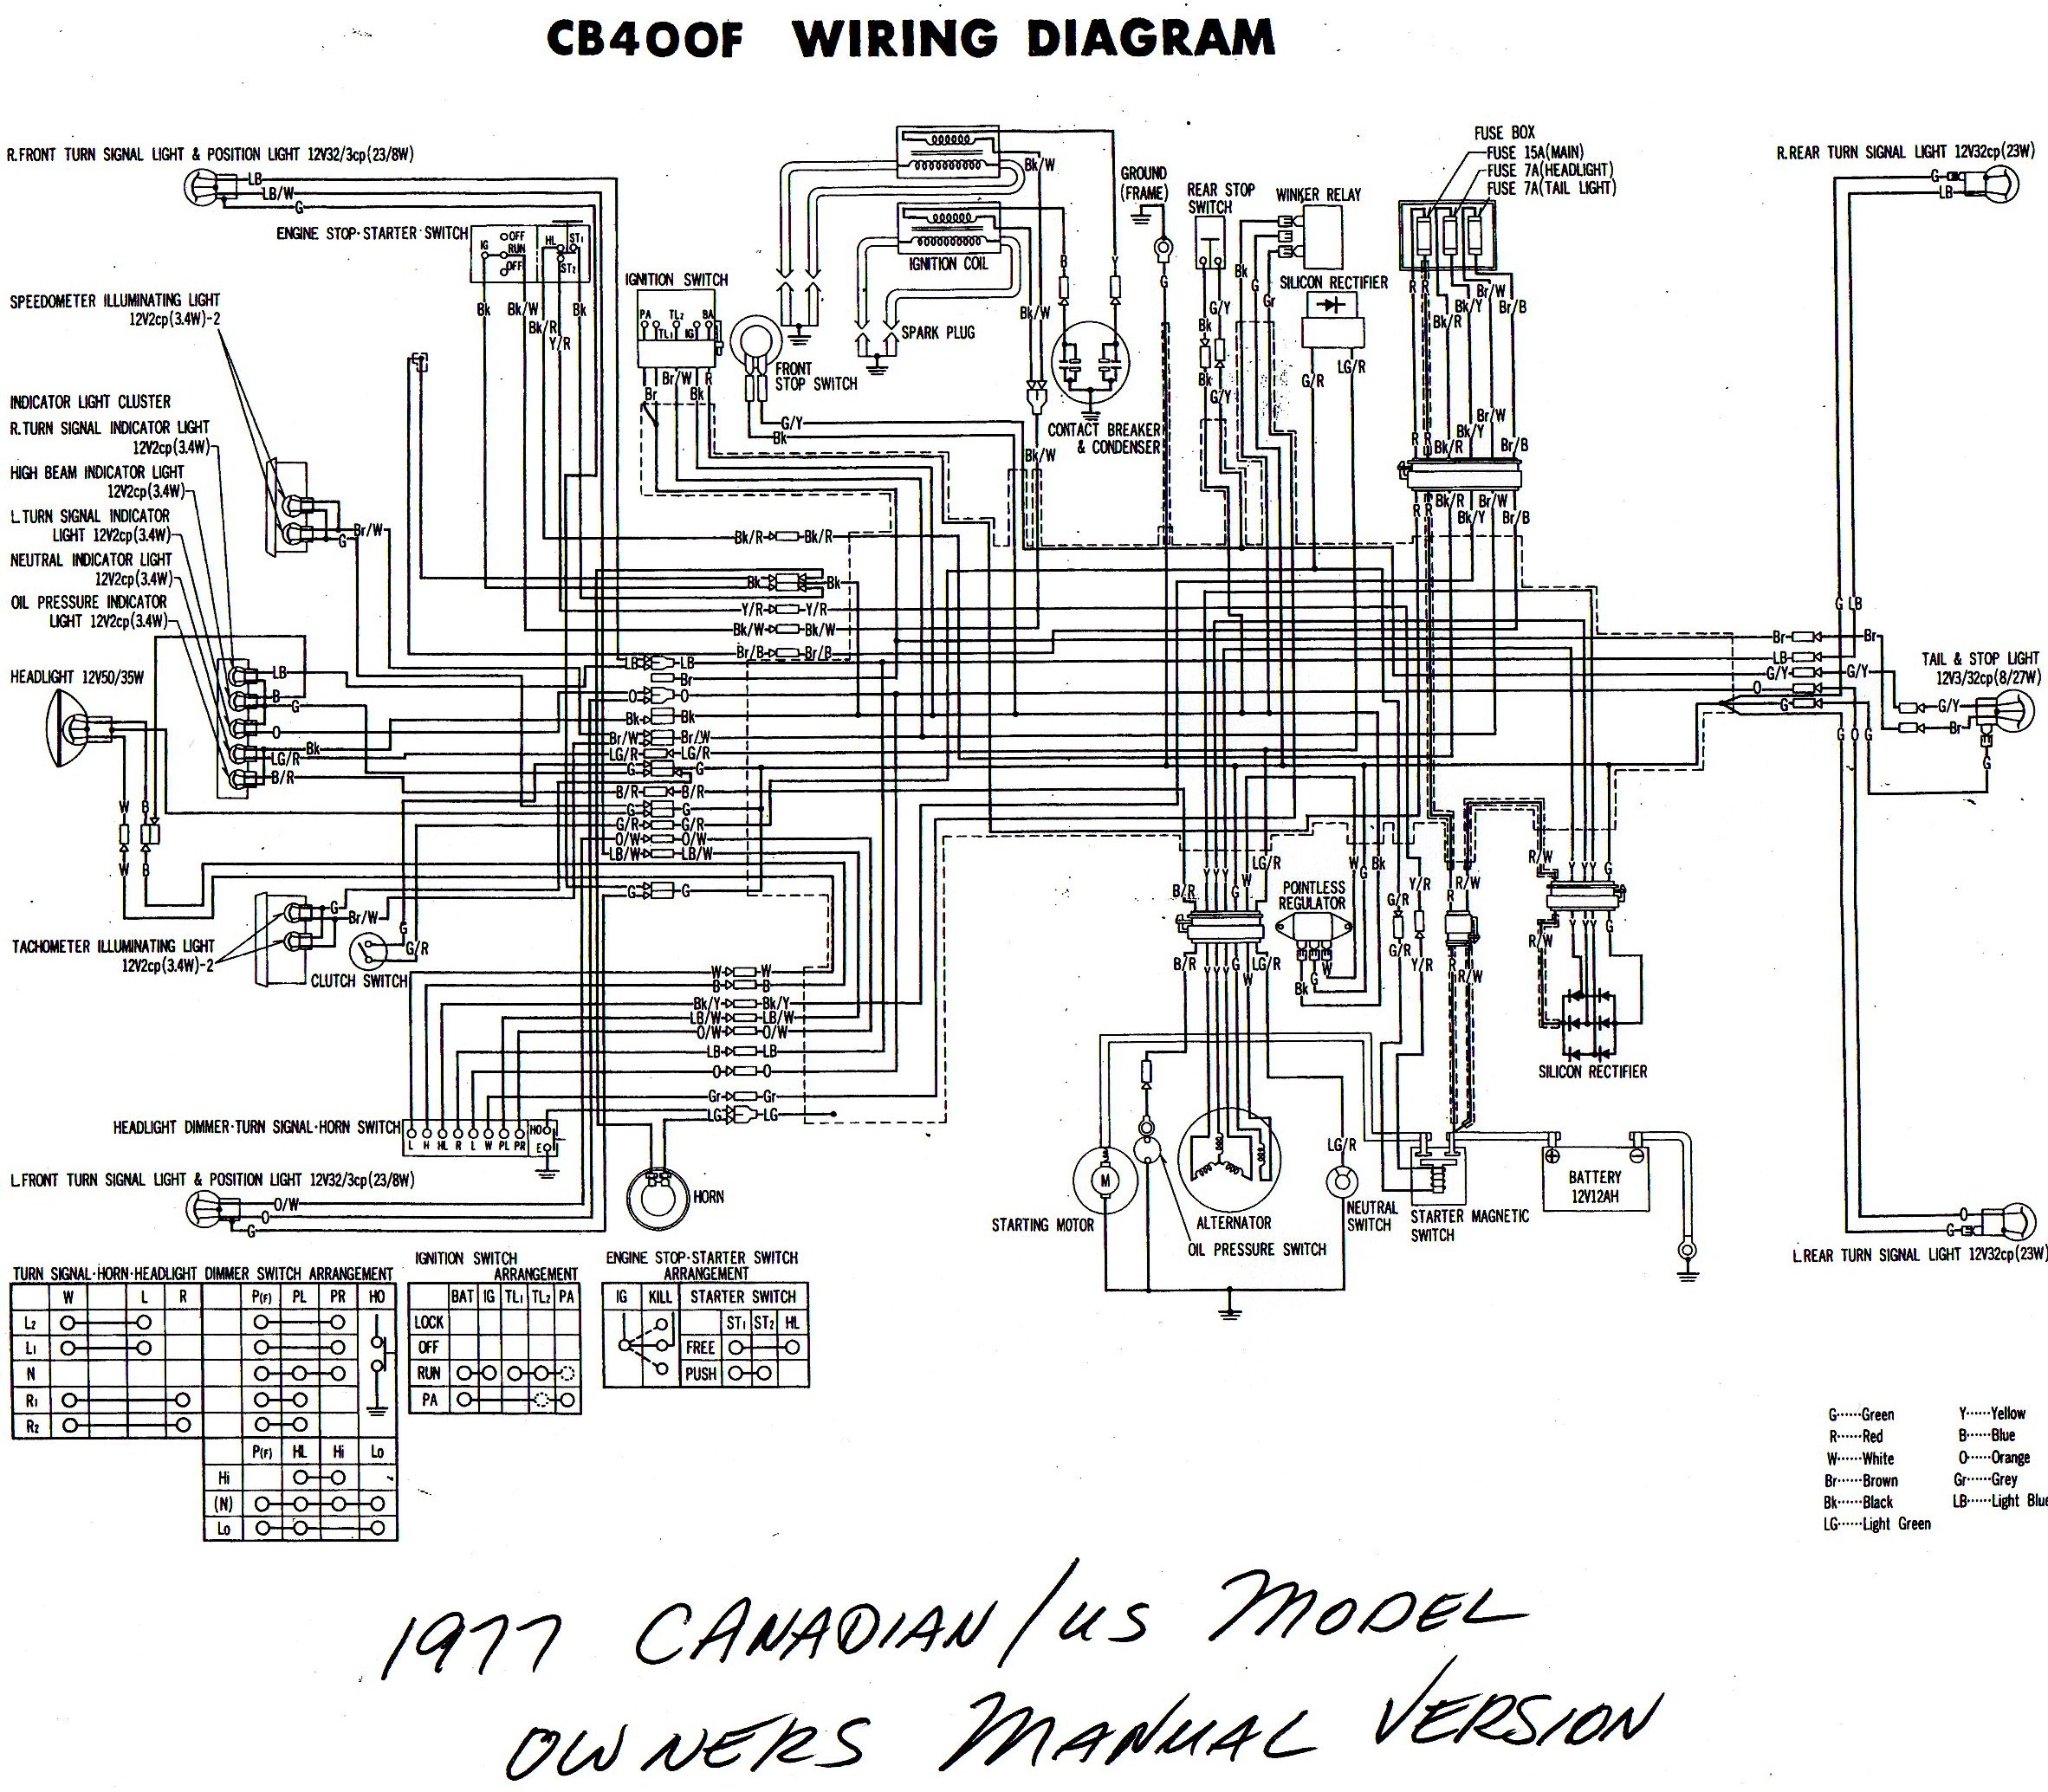 CB400F Honda Cl Wiring Diagram on yamaha xs650 wiring diagram, honda cl350 engine, honda cb360 wiring-diagram, honda cbr600rr wiring-diagram, yamaha warrior 350 wiring diagram, kawasaki ex500 wiring diagram, yamaha rz350 wiring diagram, suzuki gt550 wiring diagram, honda ct70 wiring-diagram, suzuki gs450 wiring diagram, honda cb750 wiring-diagram, honda motorcycle wiring diagrams, suzuki gt750 wiring diagram, honda ct110 wiring-diagram, honda cx500 wiring-diagram, honda sl125 wiring-diagram, honda cl350 carburetor, honda cl350 frame diagram, yamaha xs850 wiring diagram, honda ct90 wiring-diagram,